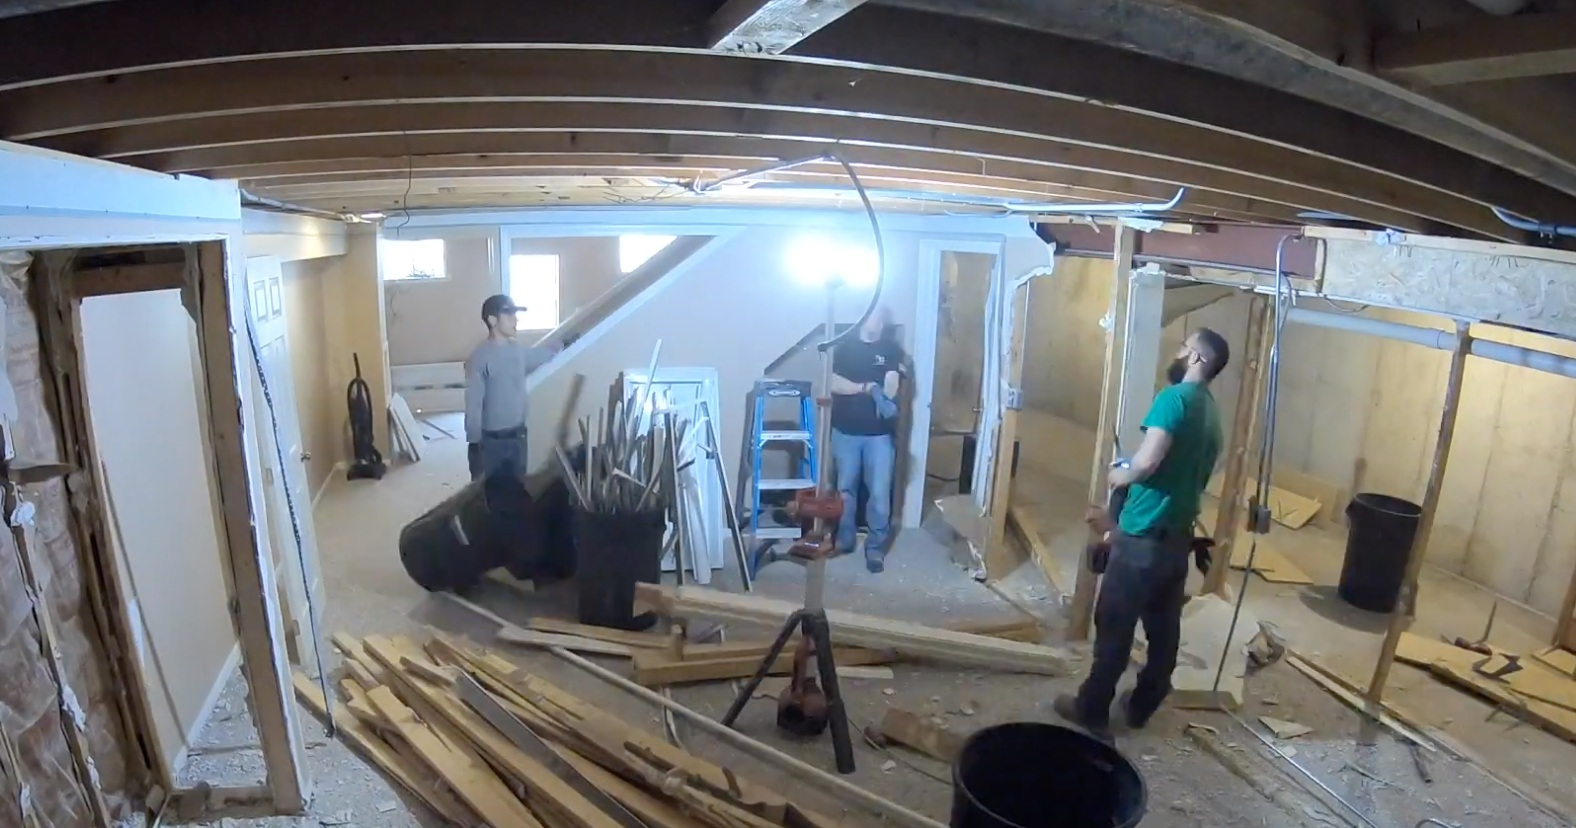 Naperville Basement Remodeling - May 2019 - Kure Construction Inc. is shown demoing a Naperville Basement. If you have a project, contact our team today to learn the next steps!